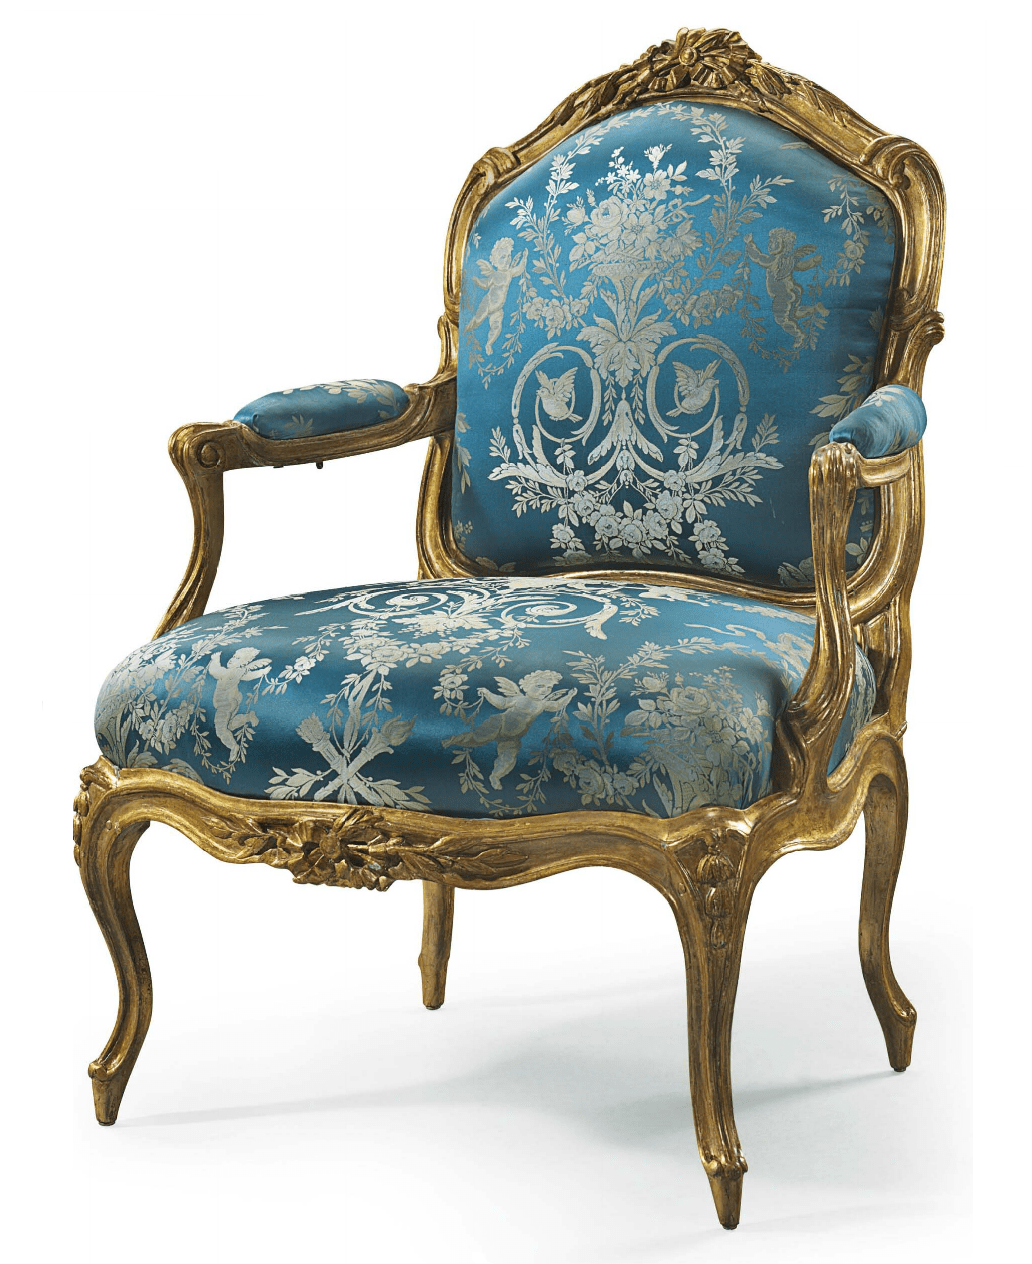 louis xv chair invacare power chairs a giltwood fauteuil la reine by jean jacques